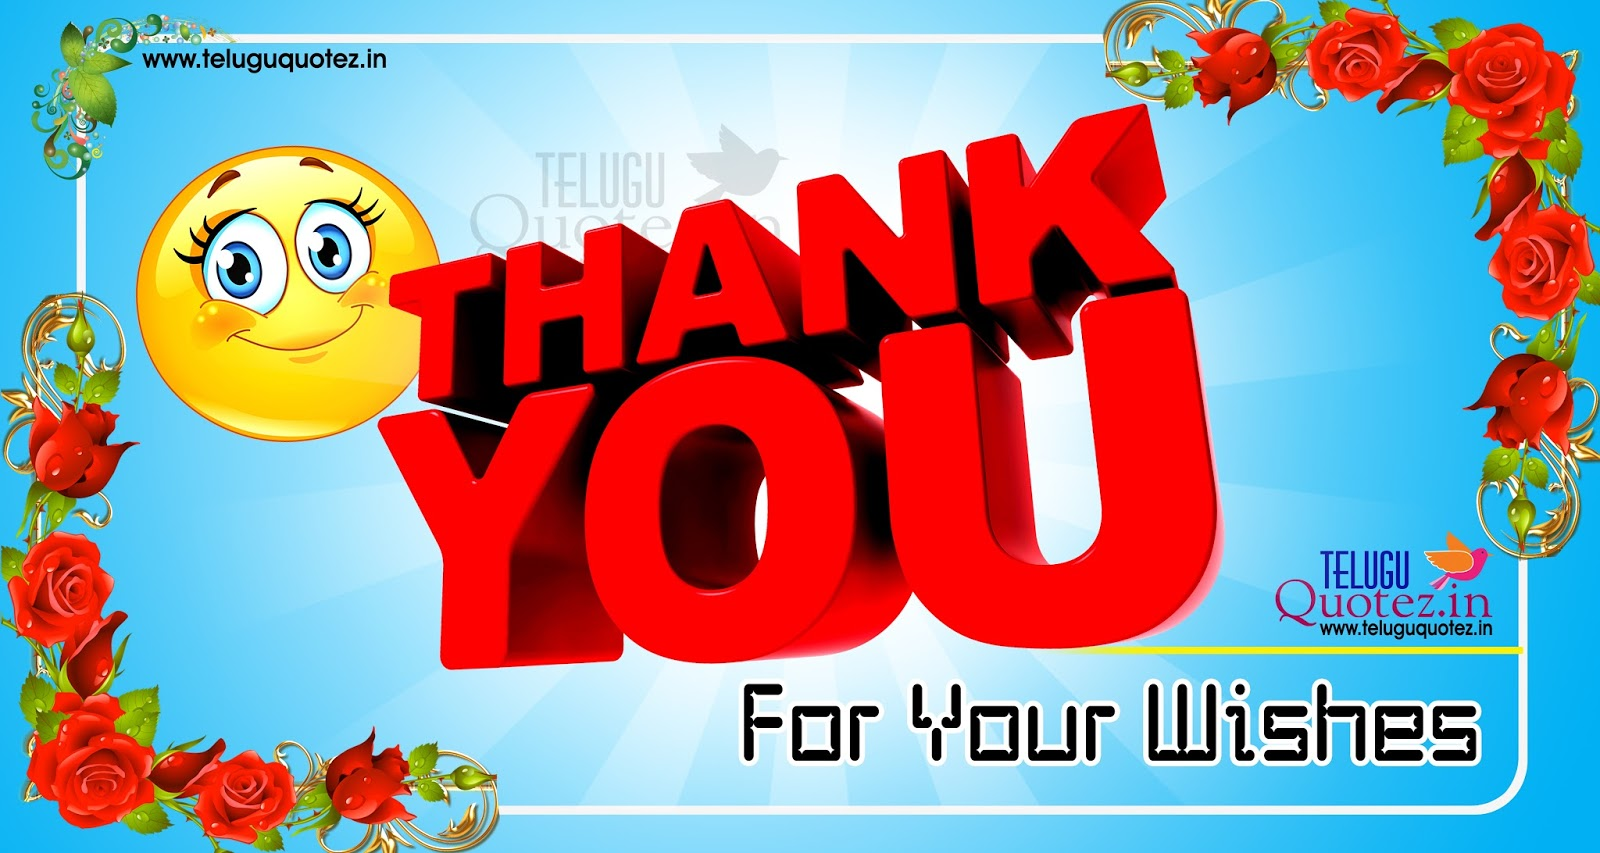 thank you wallpaper for birthday wish ; Thank-you-quotes-for-birthday-wishes-wallpapers03-teluguquotez